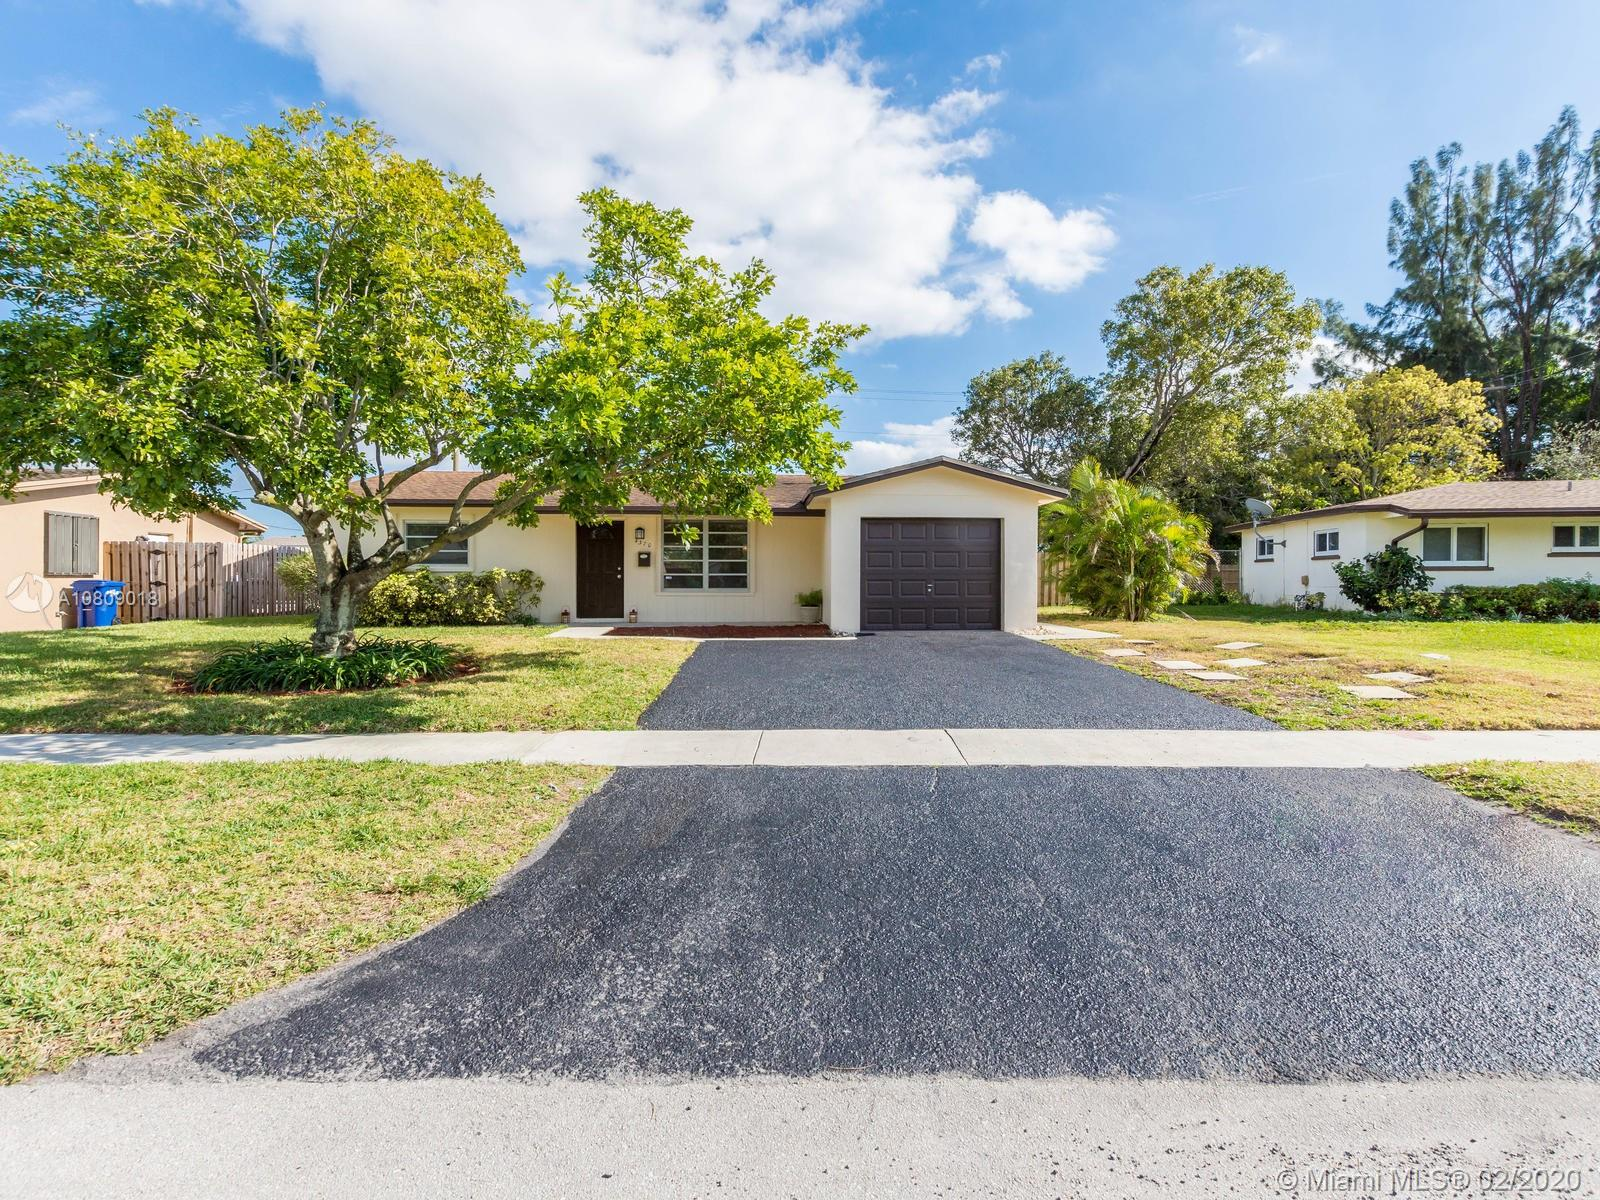 Beautifully and spacious remodeled home, large living area and formal dining welcomes you with views to the new modern kitchen with extra-large island, quarts counter-top, stainless steel appliances, soft closing cabinets with plenty of storage space, perfect for entertaining.Extra dining area next to kitchen opens to large screen porch ideal for entertainment and perfect for enjoying outdoor living.Two large bedrooms with plenty of closet space and beautifully remodeled bath. Large back yard for your enjoyment with room for a pool.Spacious garage with indoor laundry facilities for your convenience.Energy efficient recess lighting.Walking distance to Lauderhill Mall, Elementary School and Wolk park, minutes from Central Broward Park and Stadium,Performing Arts Center. This home has it all!